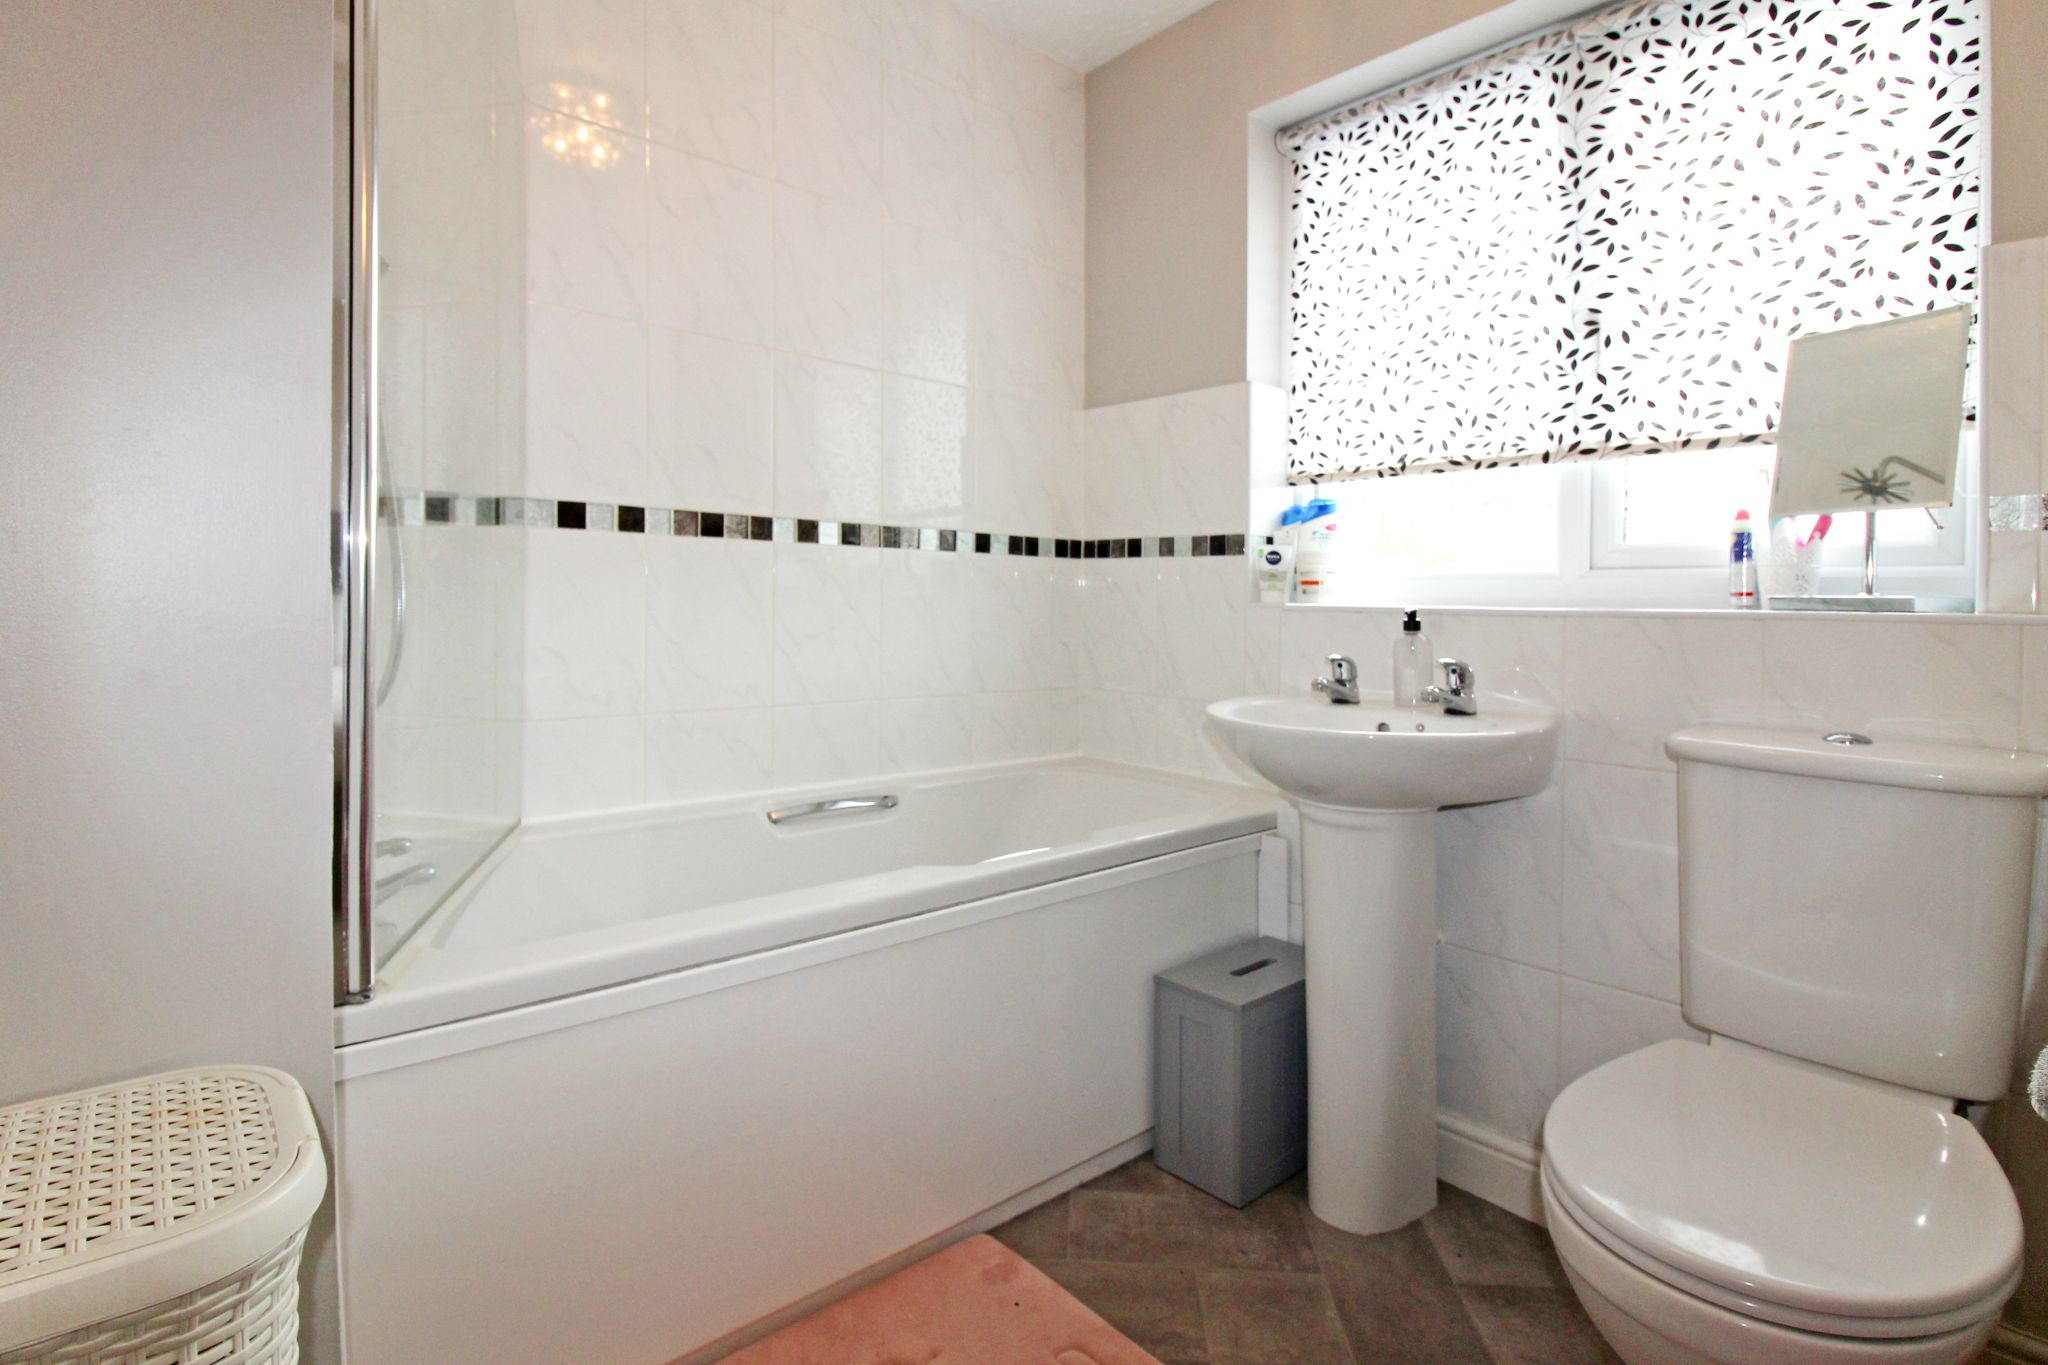 4 bedroom detached house For Sale in Solihull - Photograph 11.